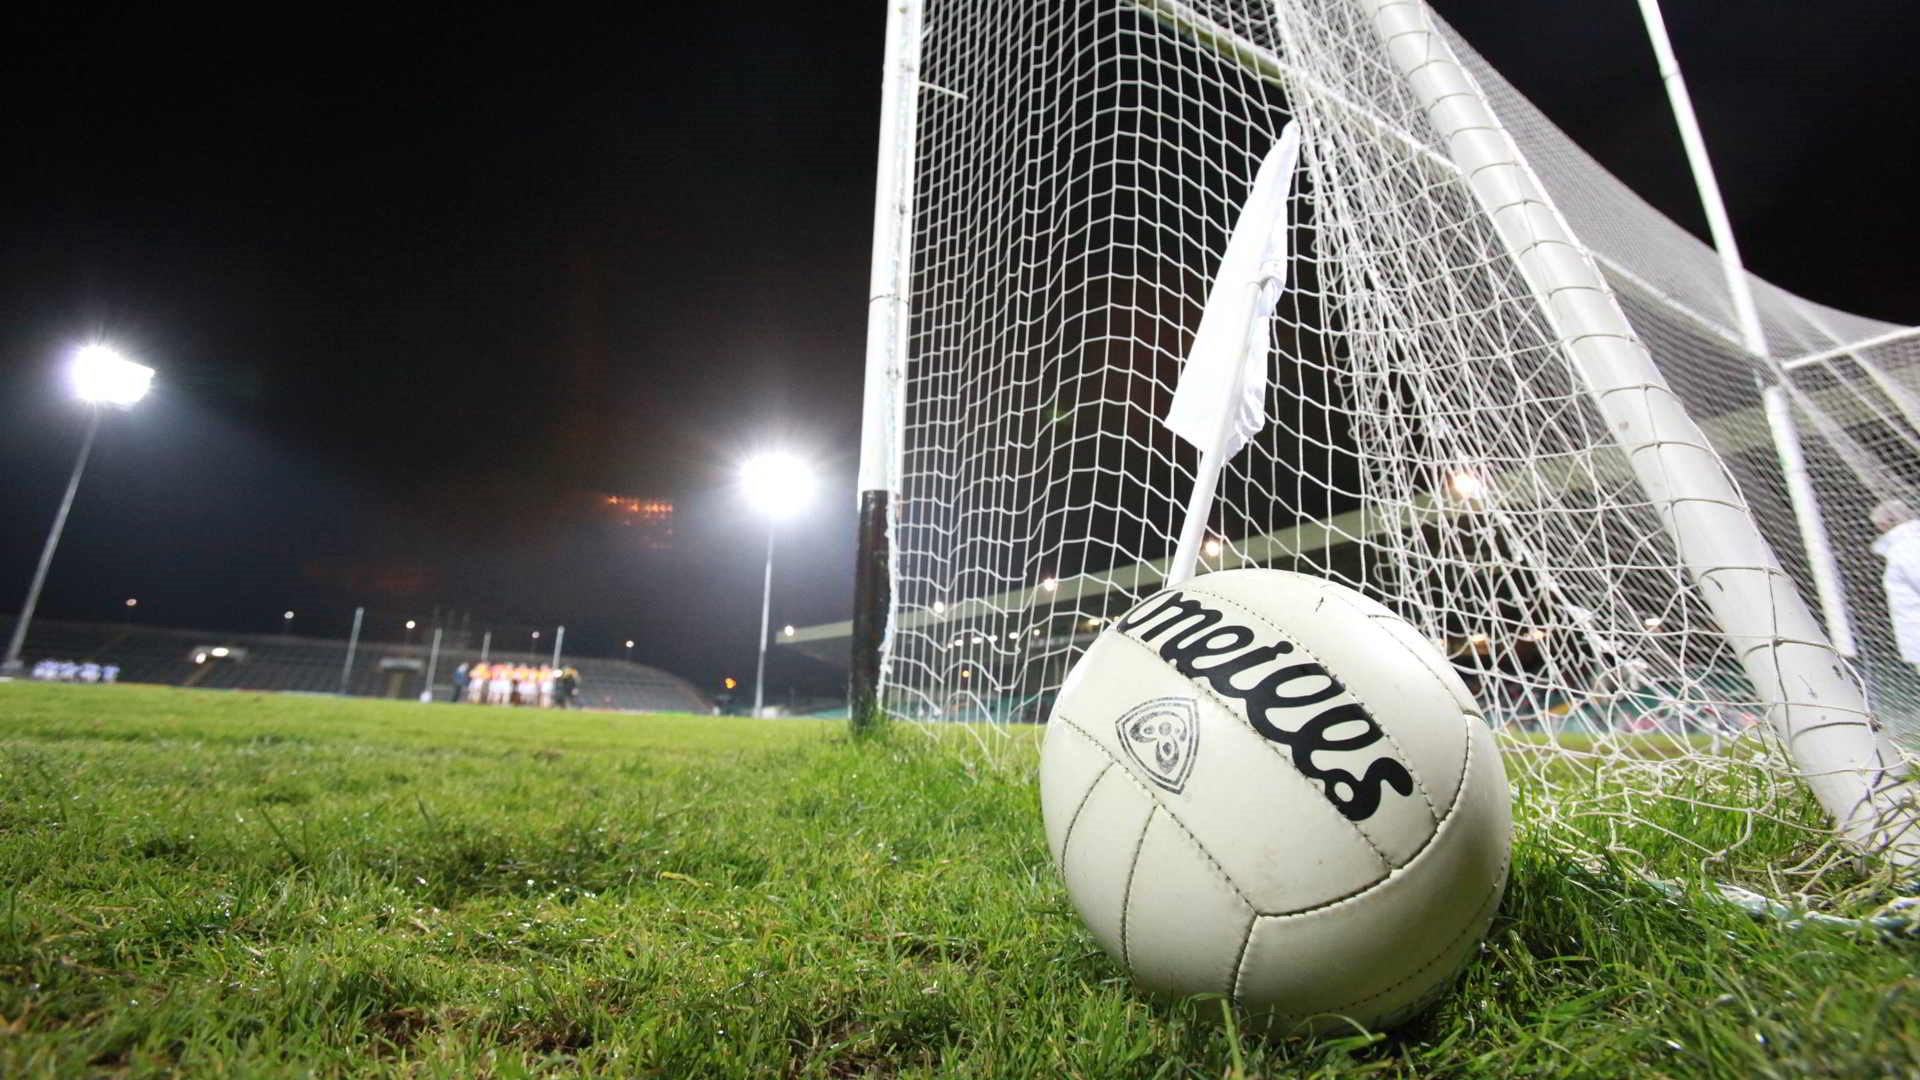 GAA action this afternoon